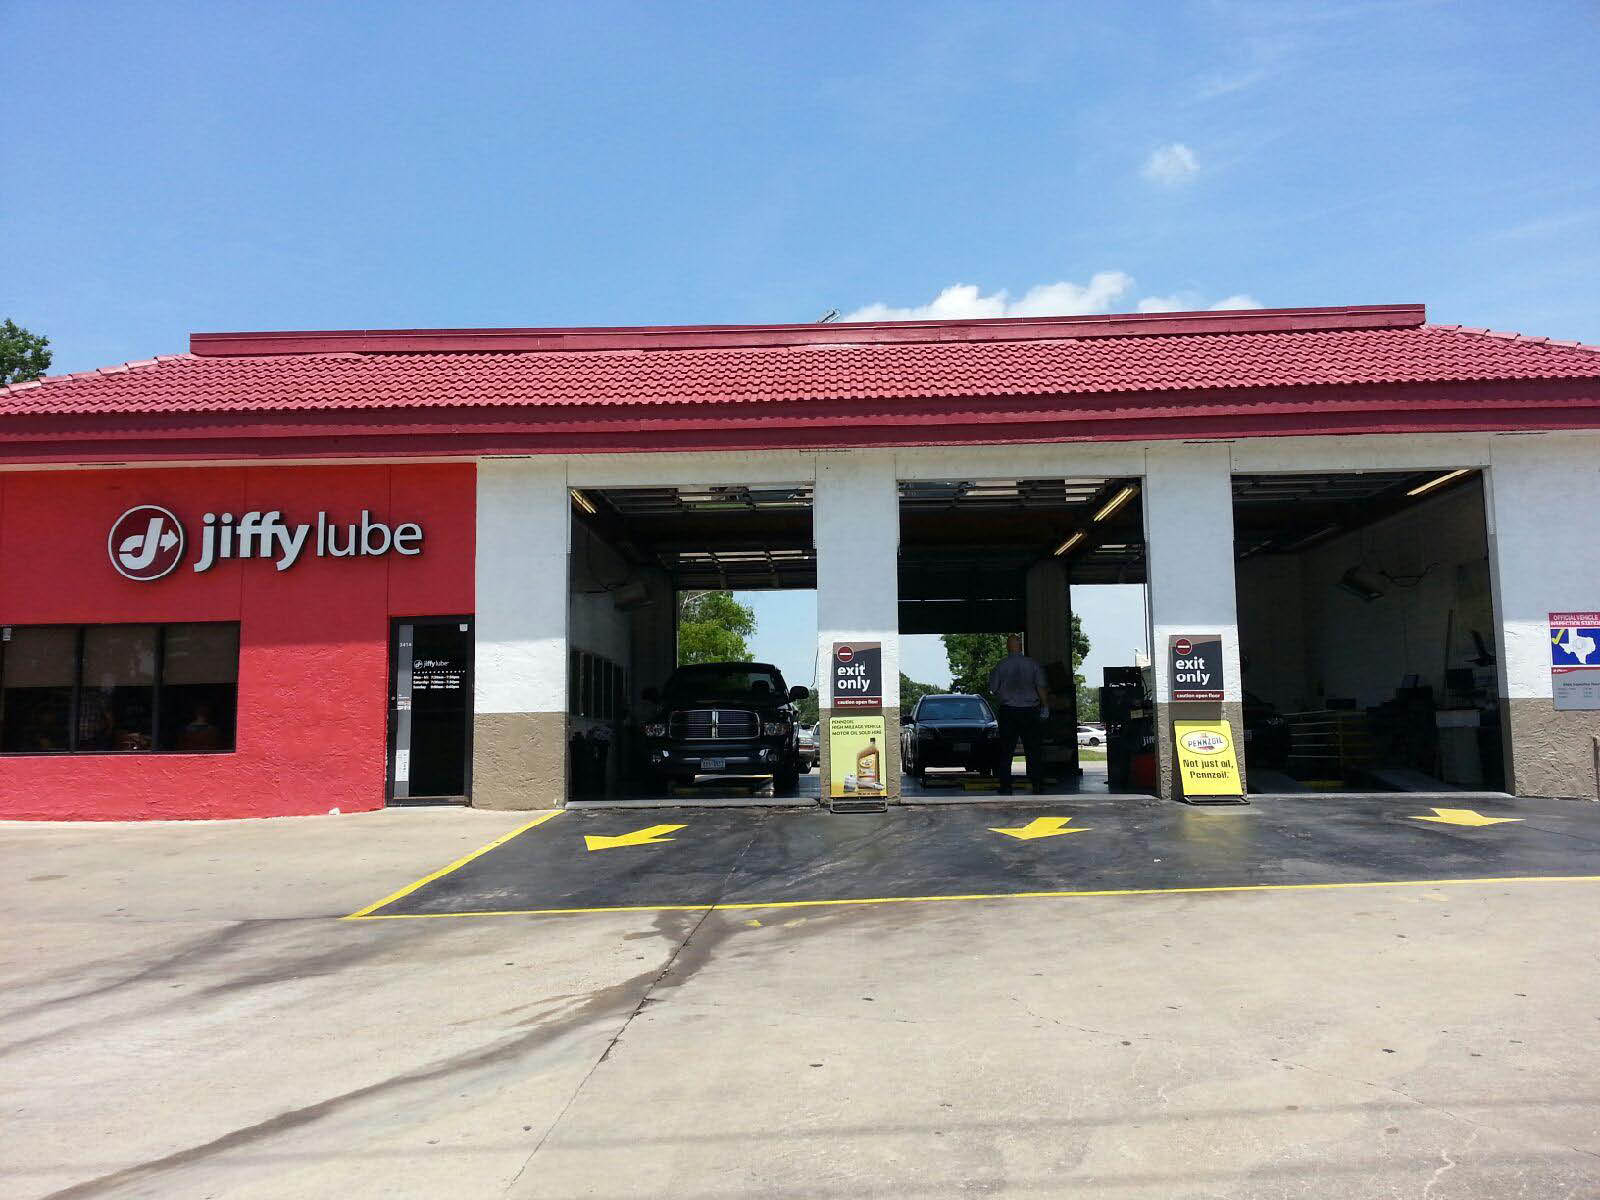 Express Lube is a family owned and locally operated business with over 30 convenient locations in the San Antonio area. We opened our first location in with a commitment to providing excellent customer care and professional automotive services.